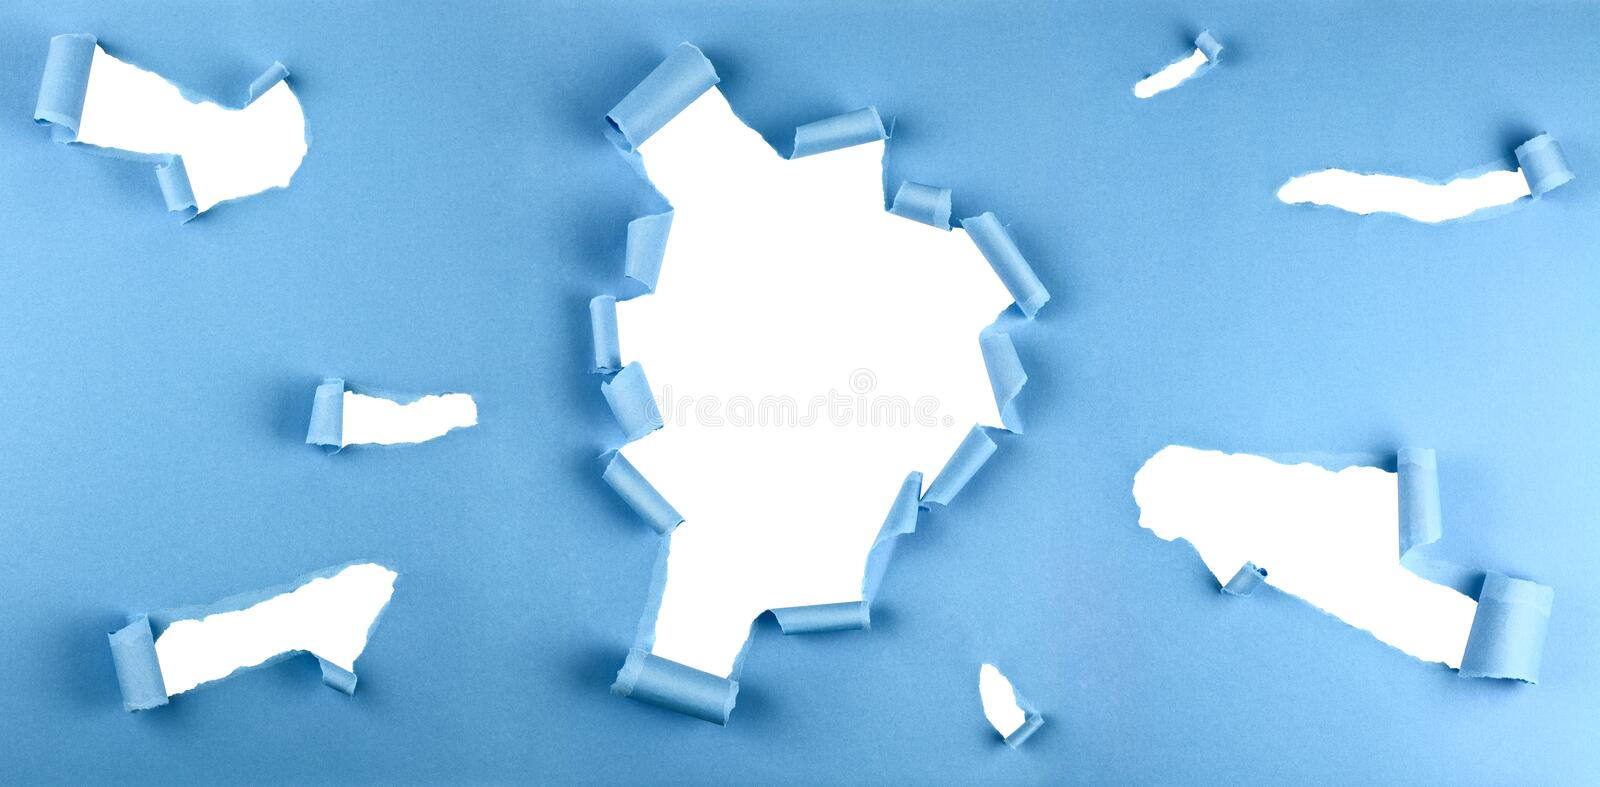 Torn holes in blue paper royalty free stock photography